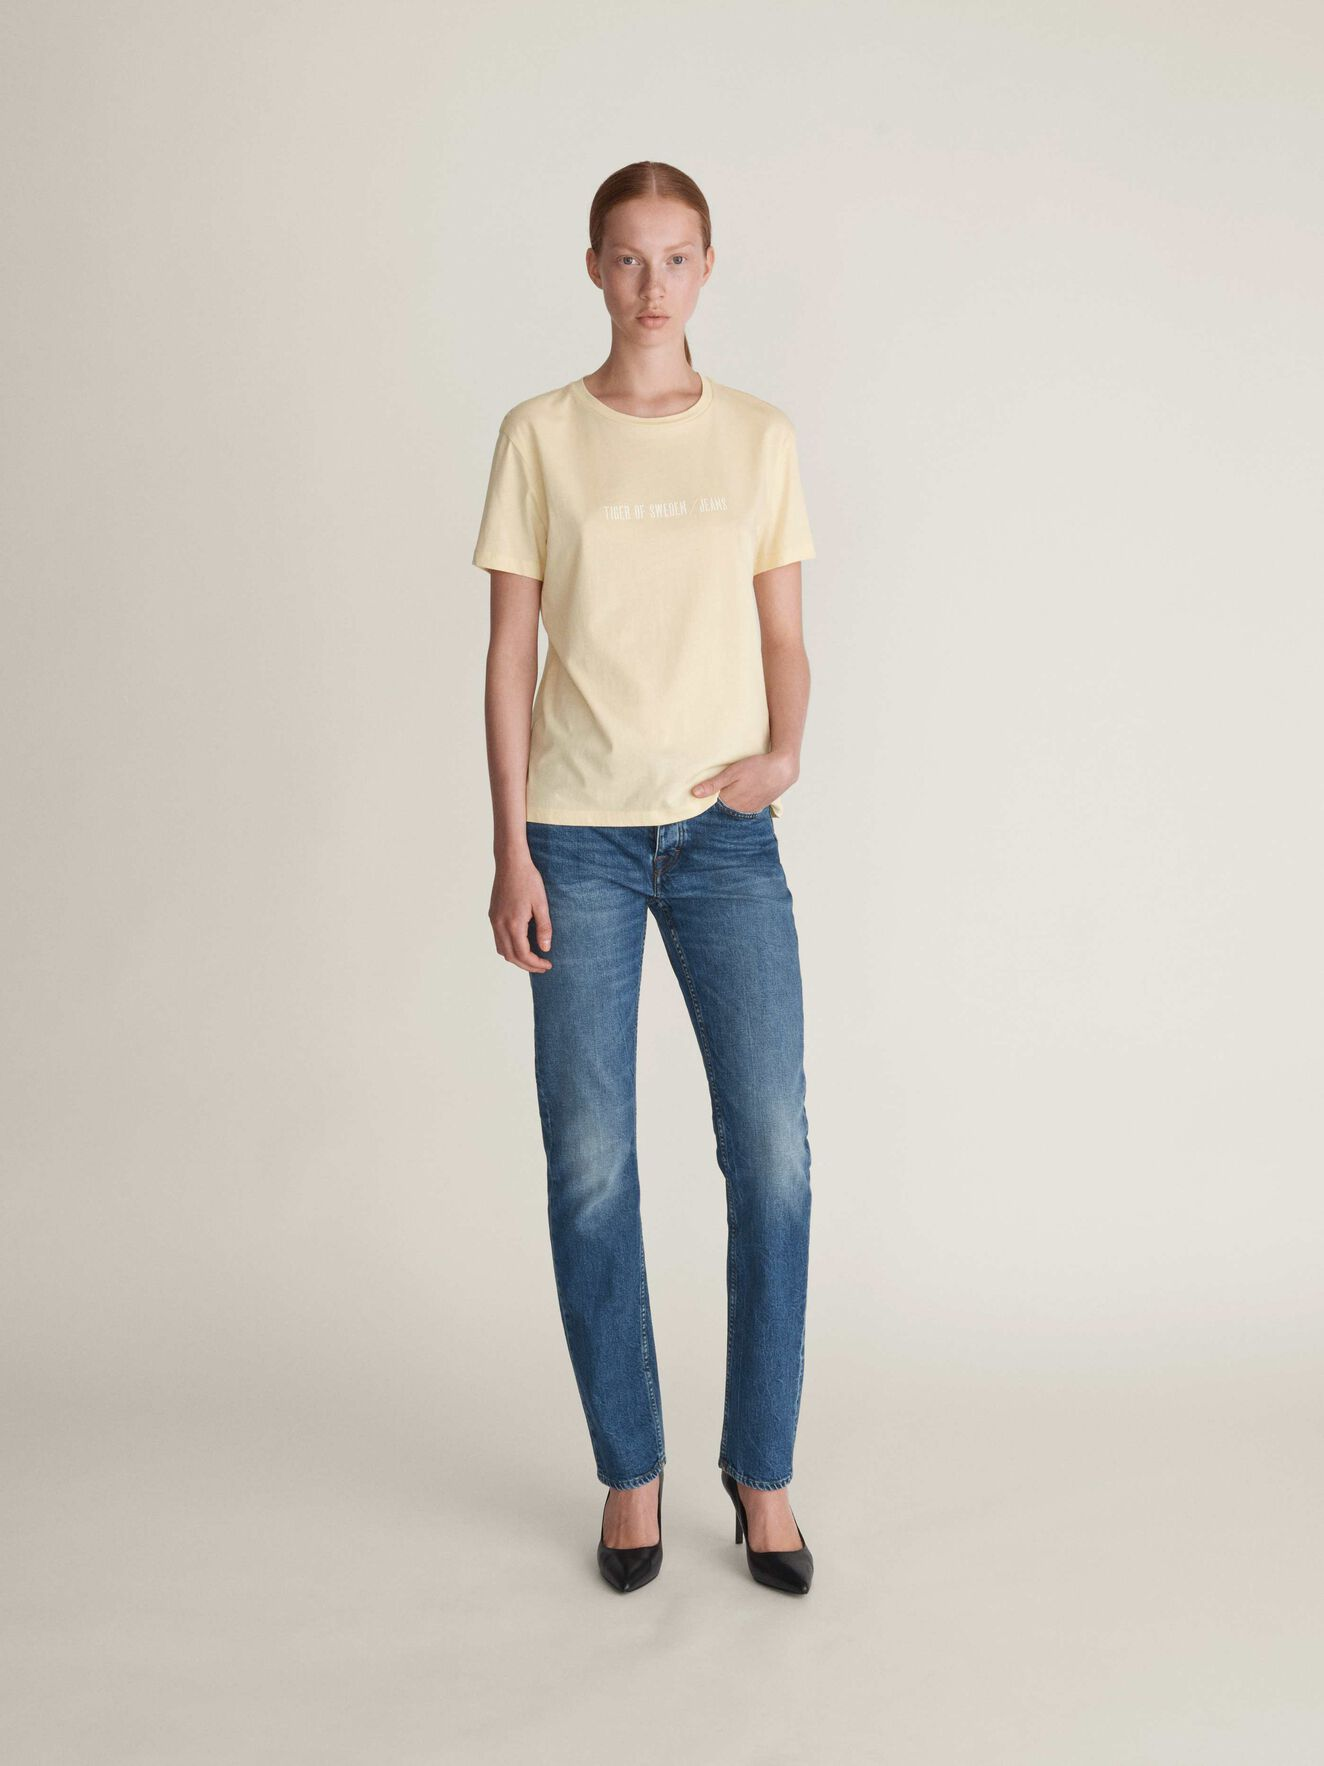 Dawn Print-T-Shirt in Curd from Tiger of Sweden